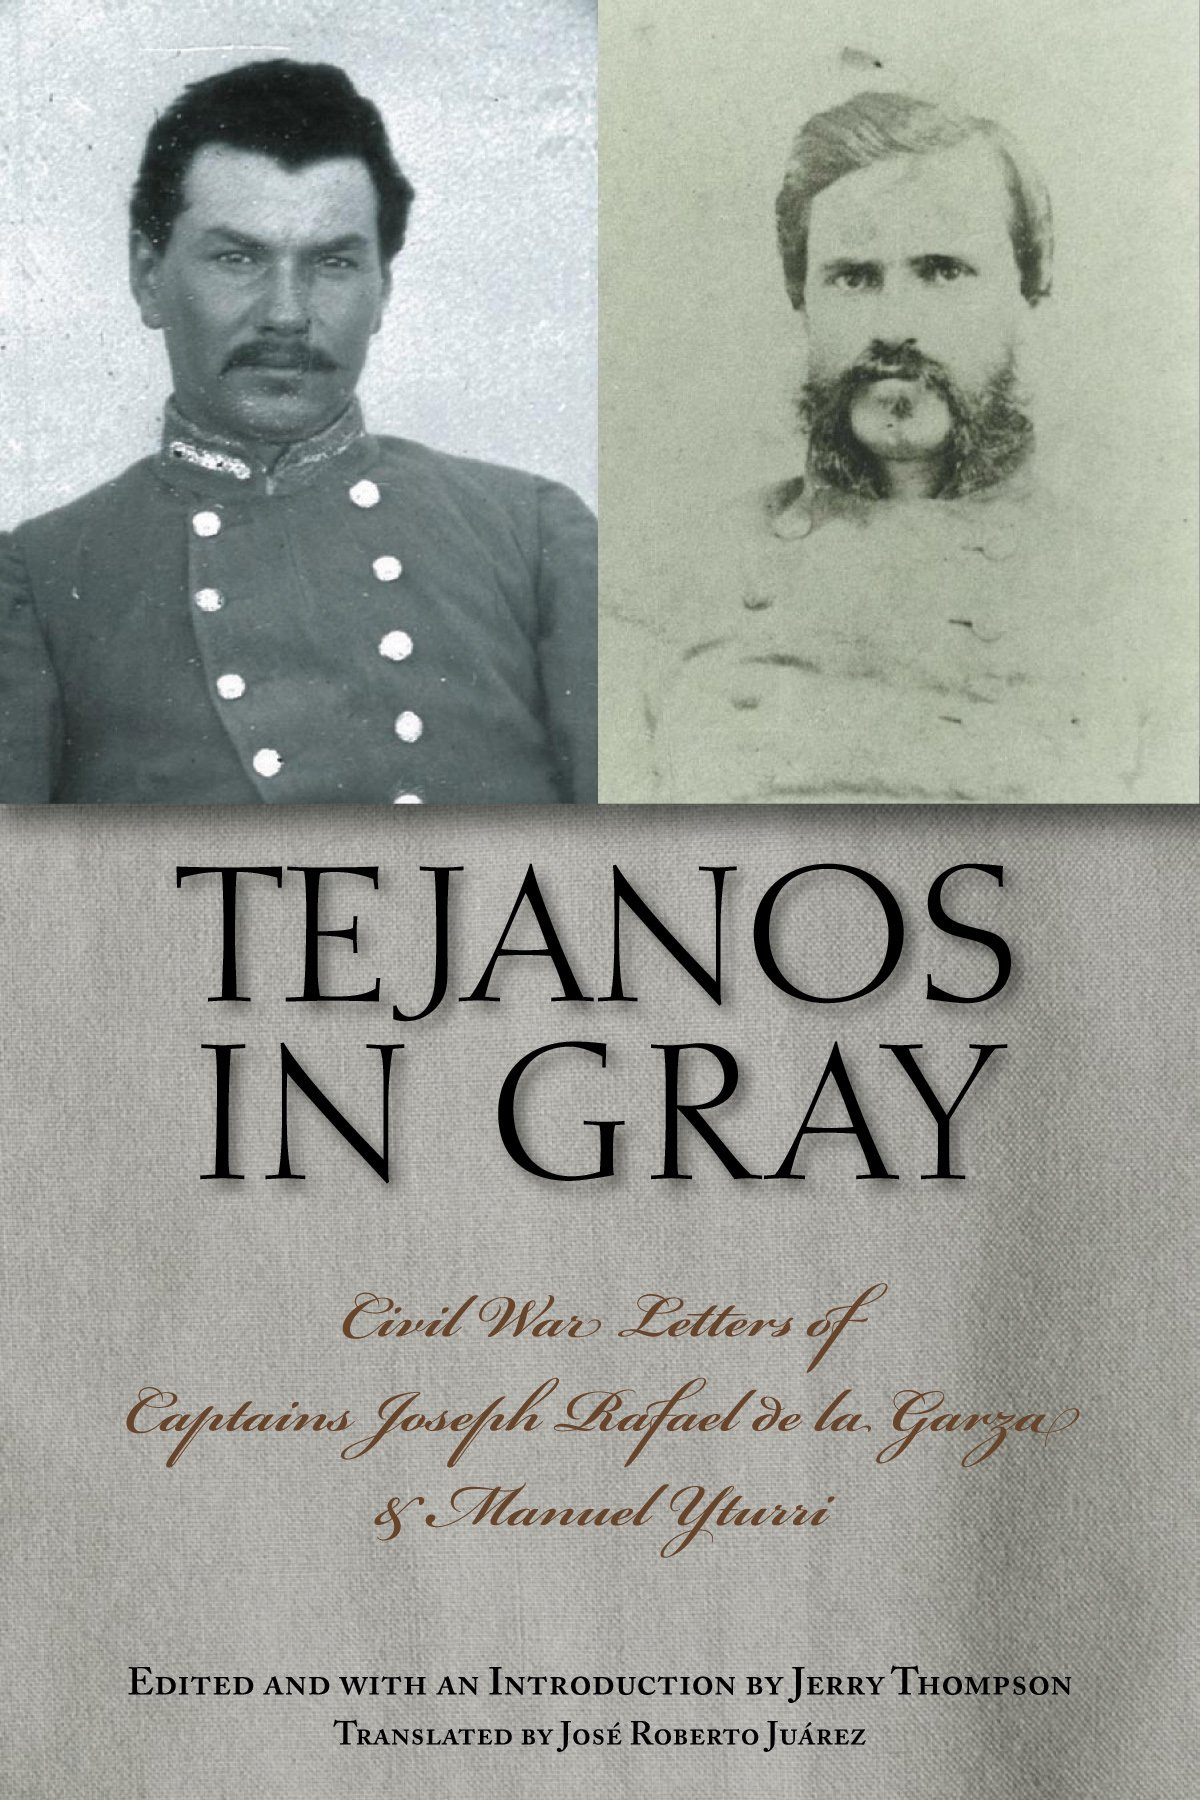 Read Online Tejanos in Gray: Civil War Letters of Captains Joseph Rafael de la Garza and Manuel Yturri (Fronteras Series, sponsored by Texas A&M International University) PDF